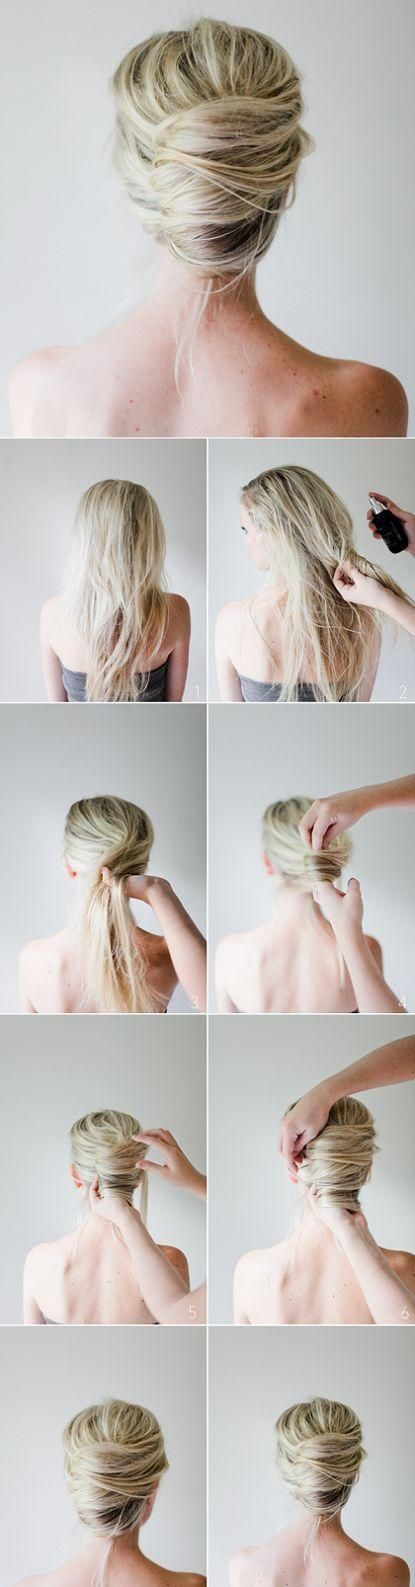 Festive messy French twist from Irrelephant-Blog. Twist the hair around your finger or hand until you can pin it against your head.